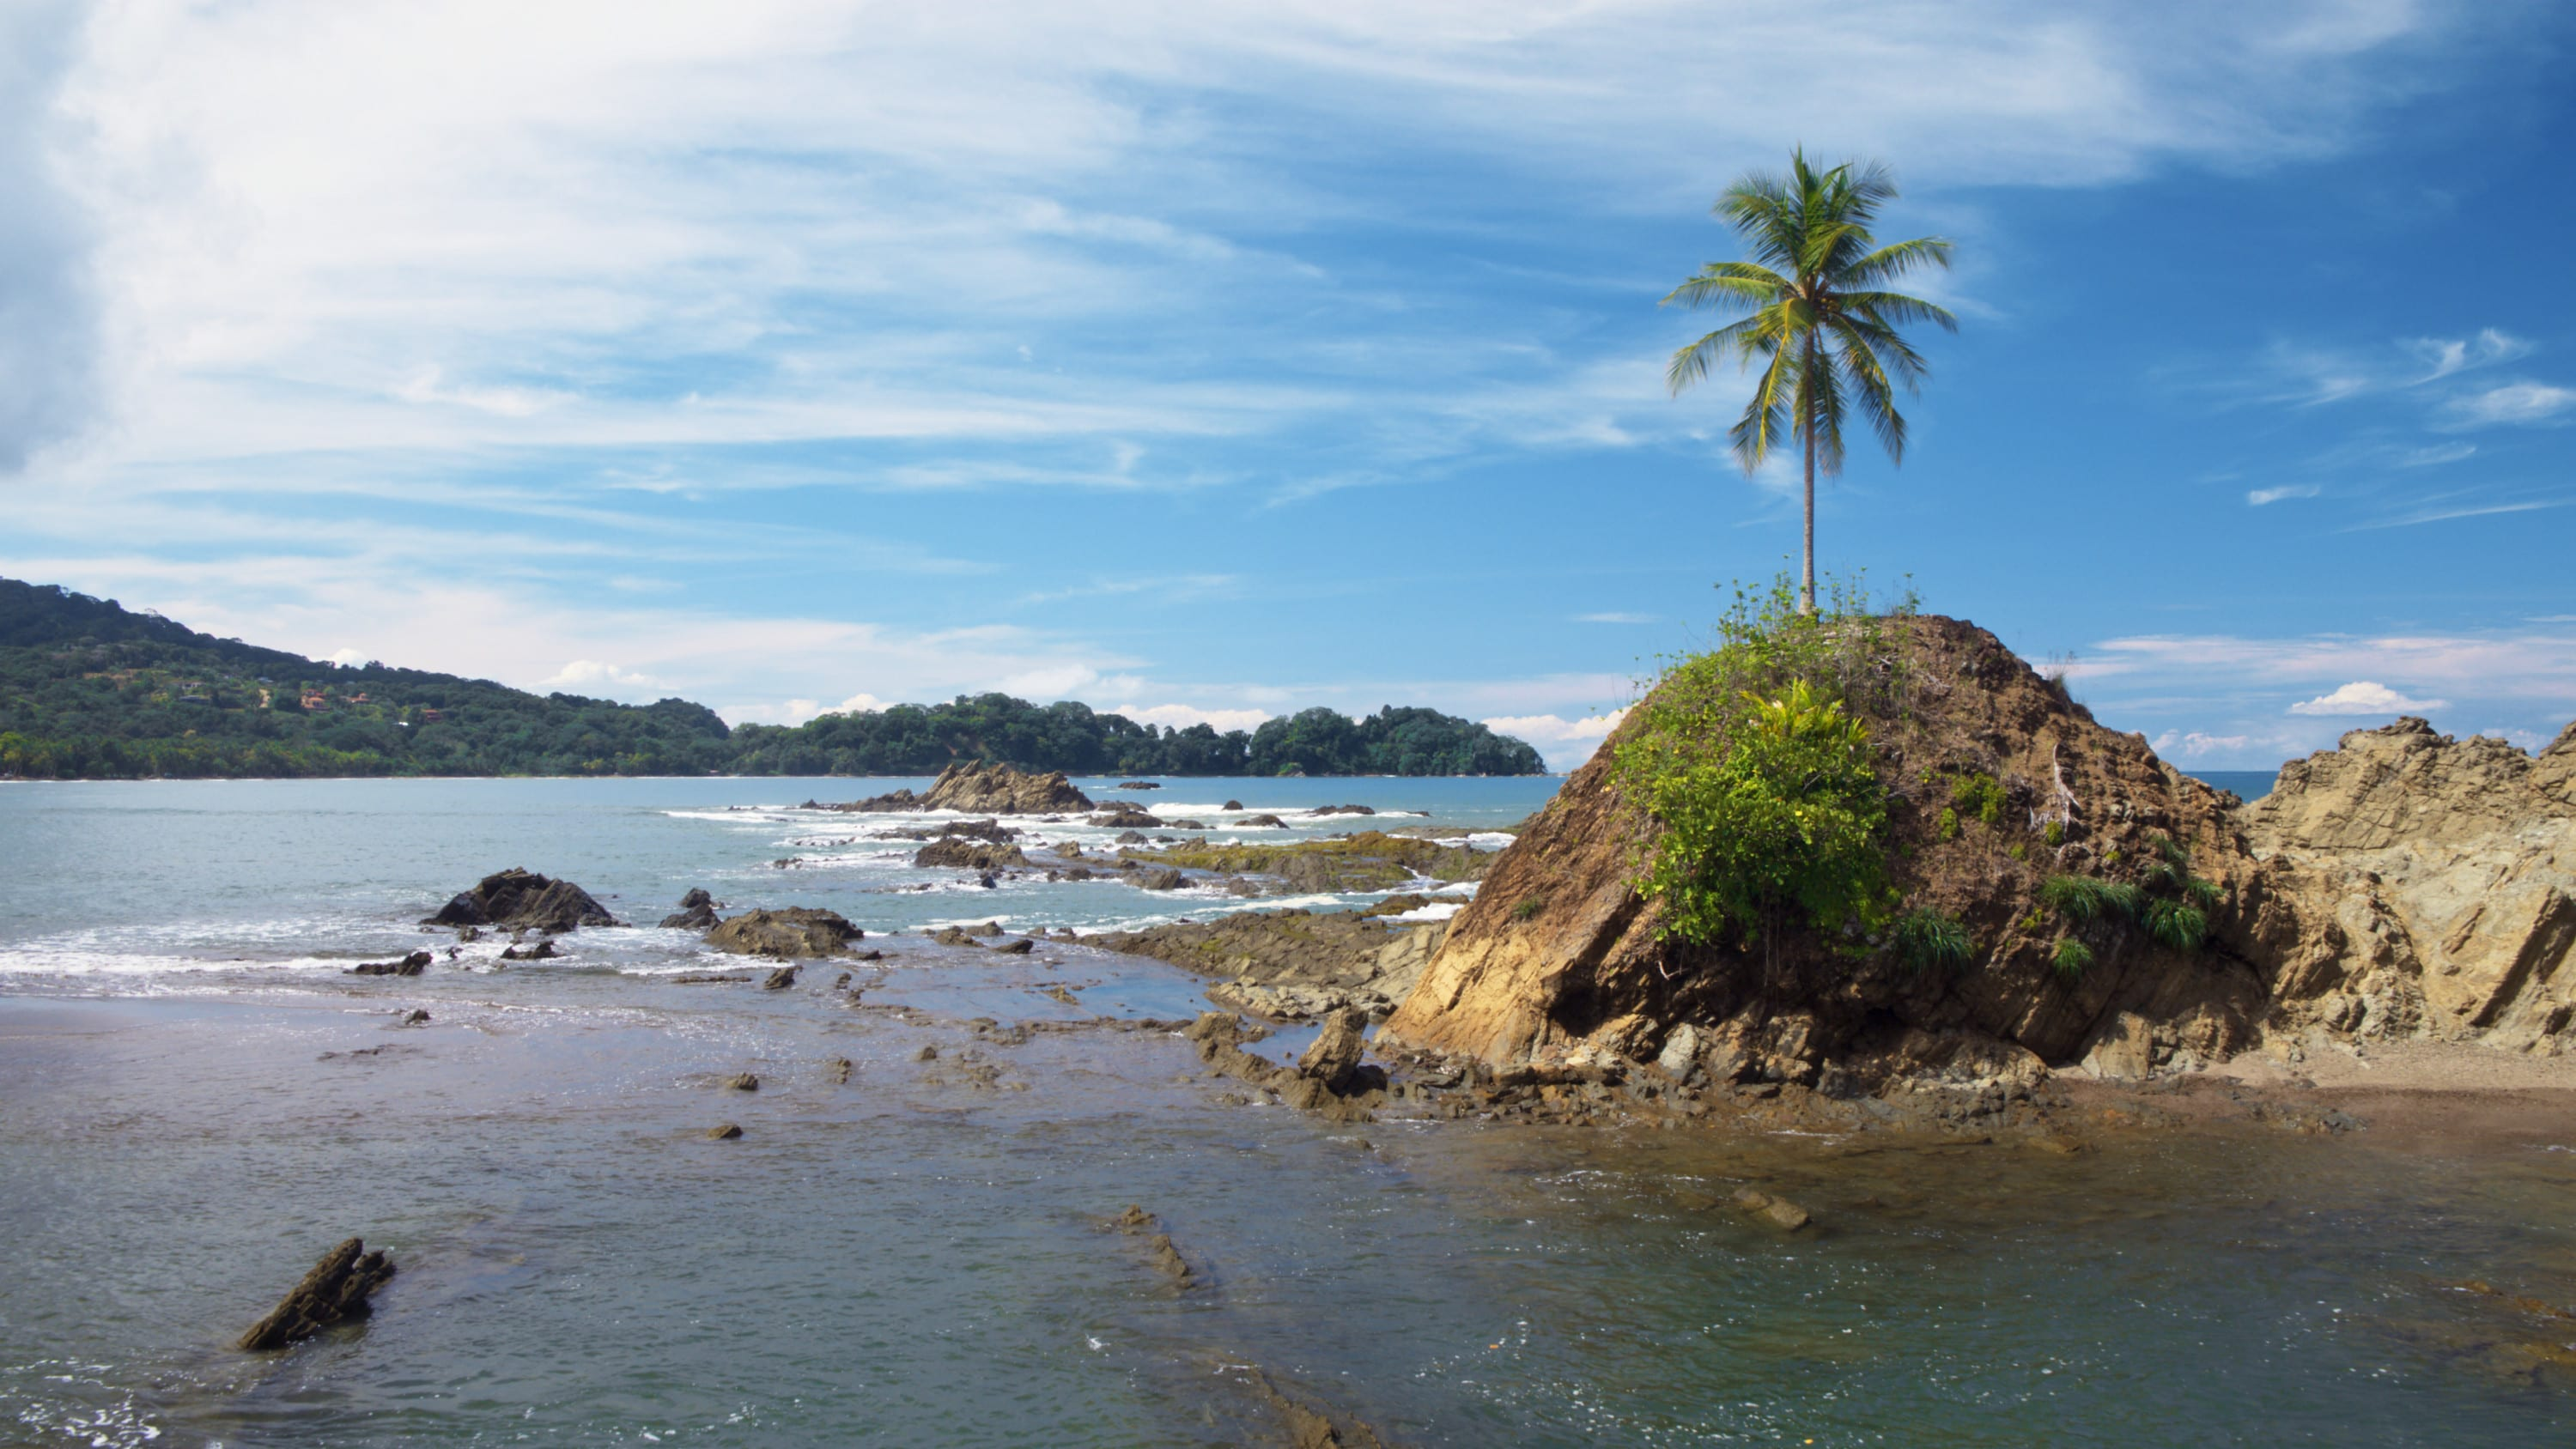 A single tree on a rocky island in Manuel Antonio National Park. (National Geographic for Disney+)